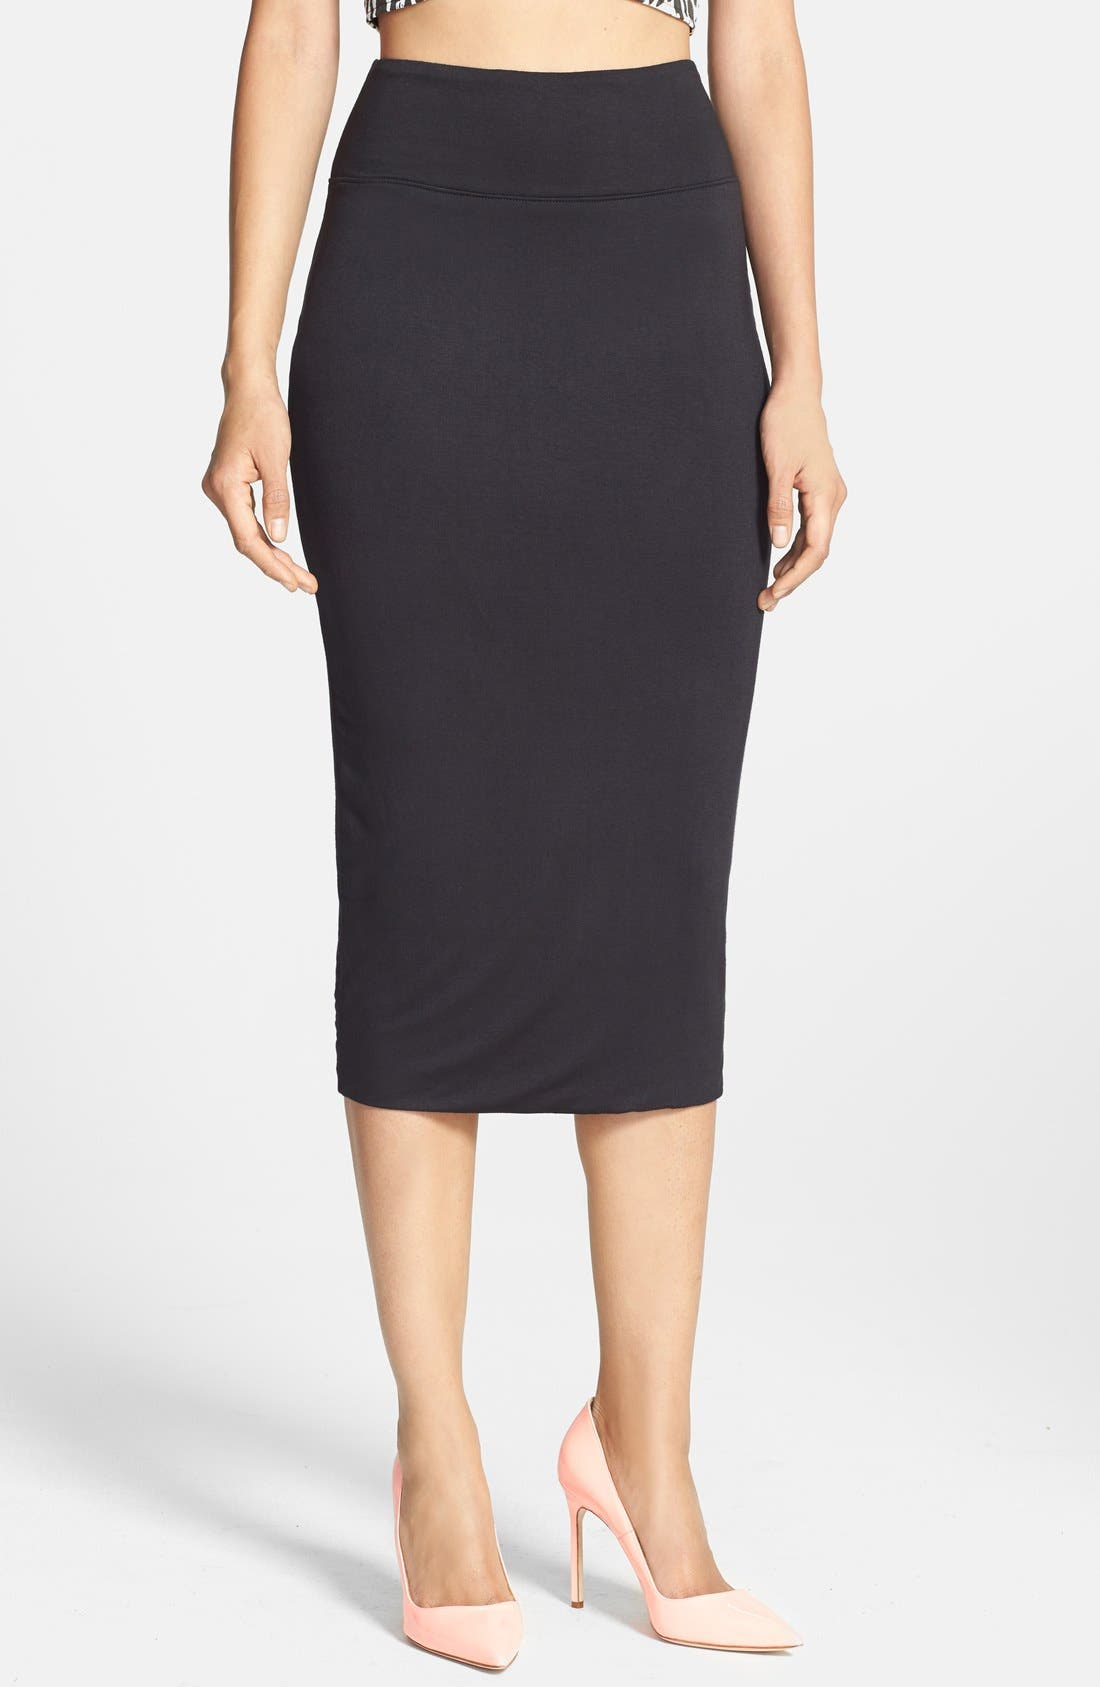 Alternate Image 1 Selected - Leith High Waist Tube Midi Skirt